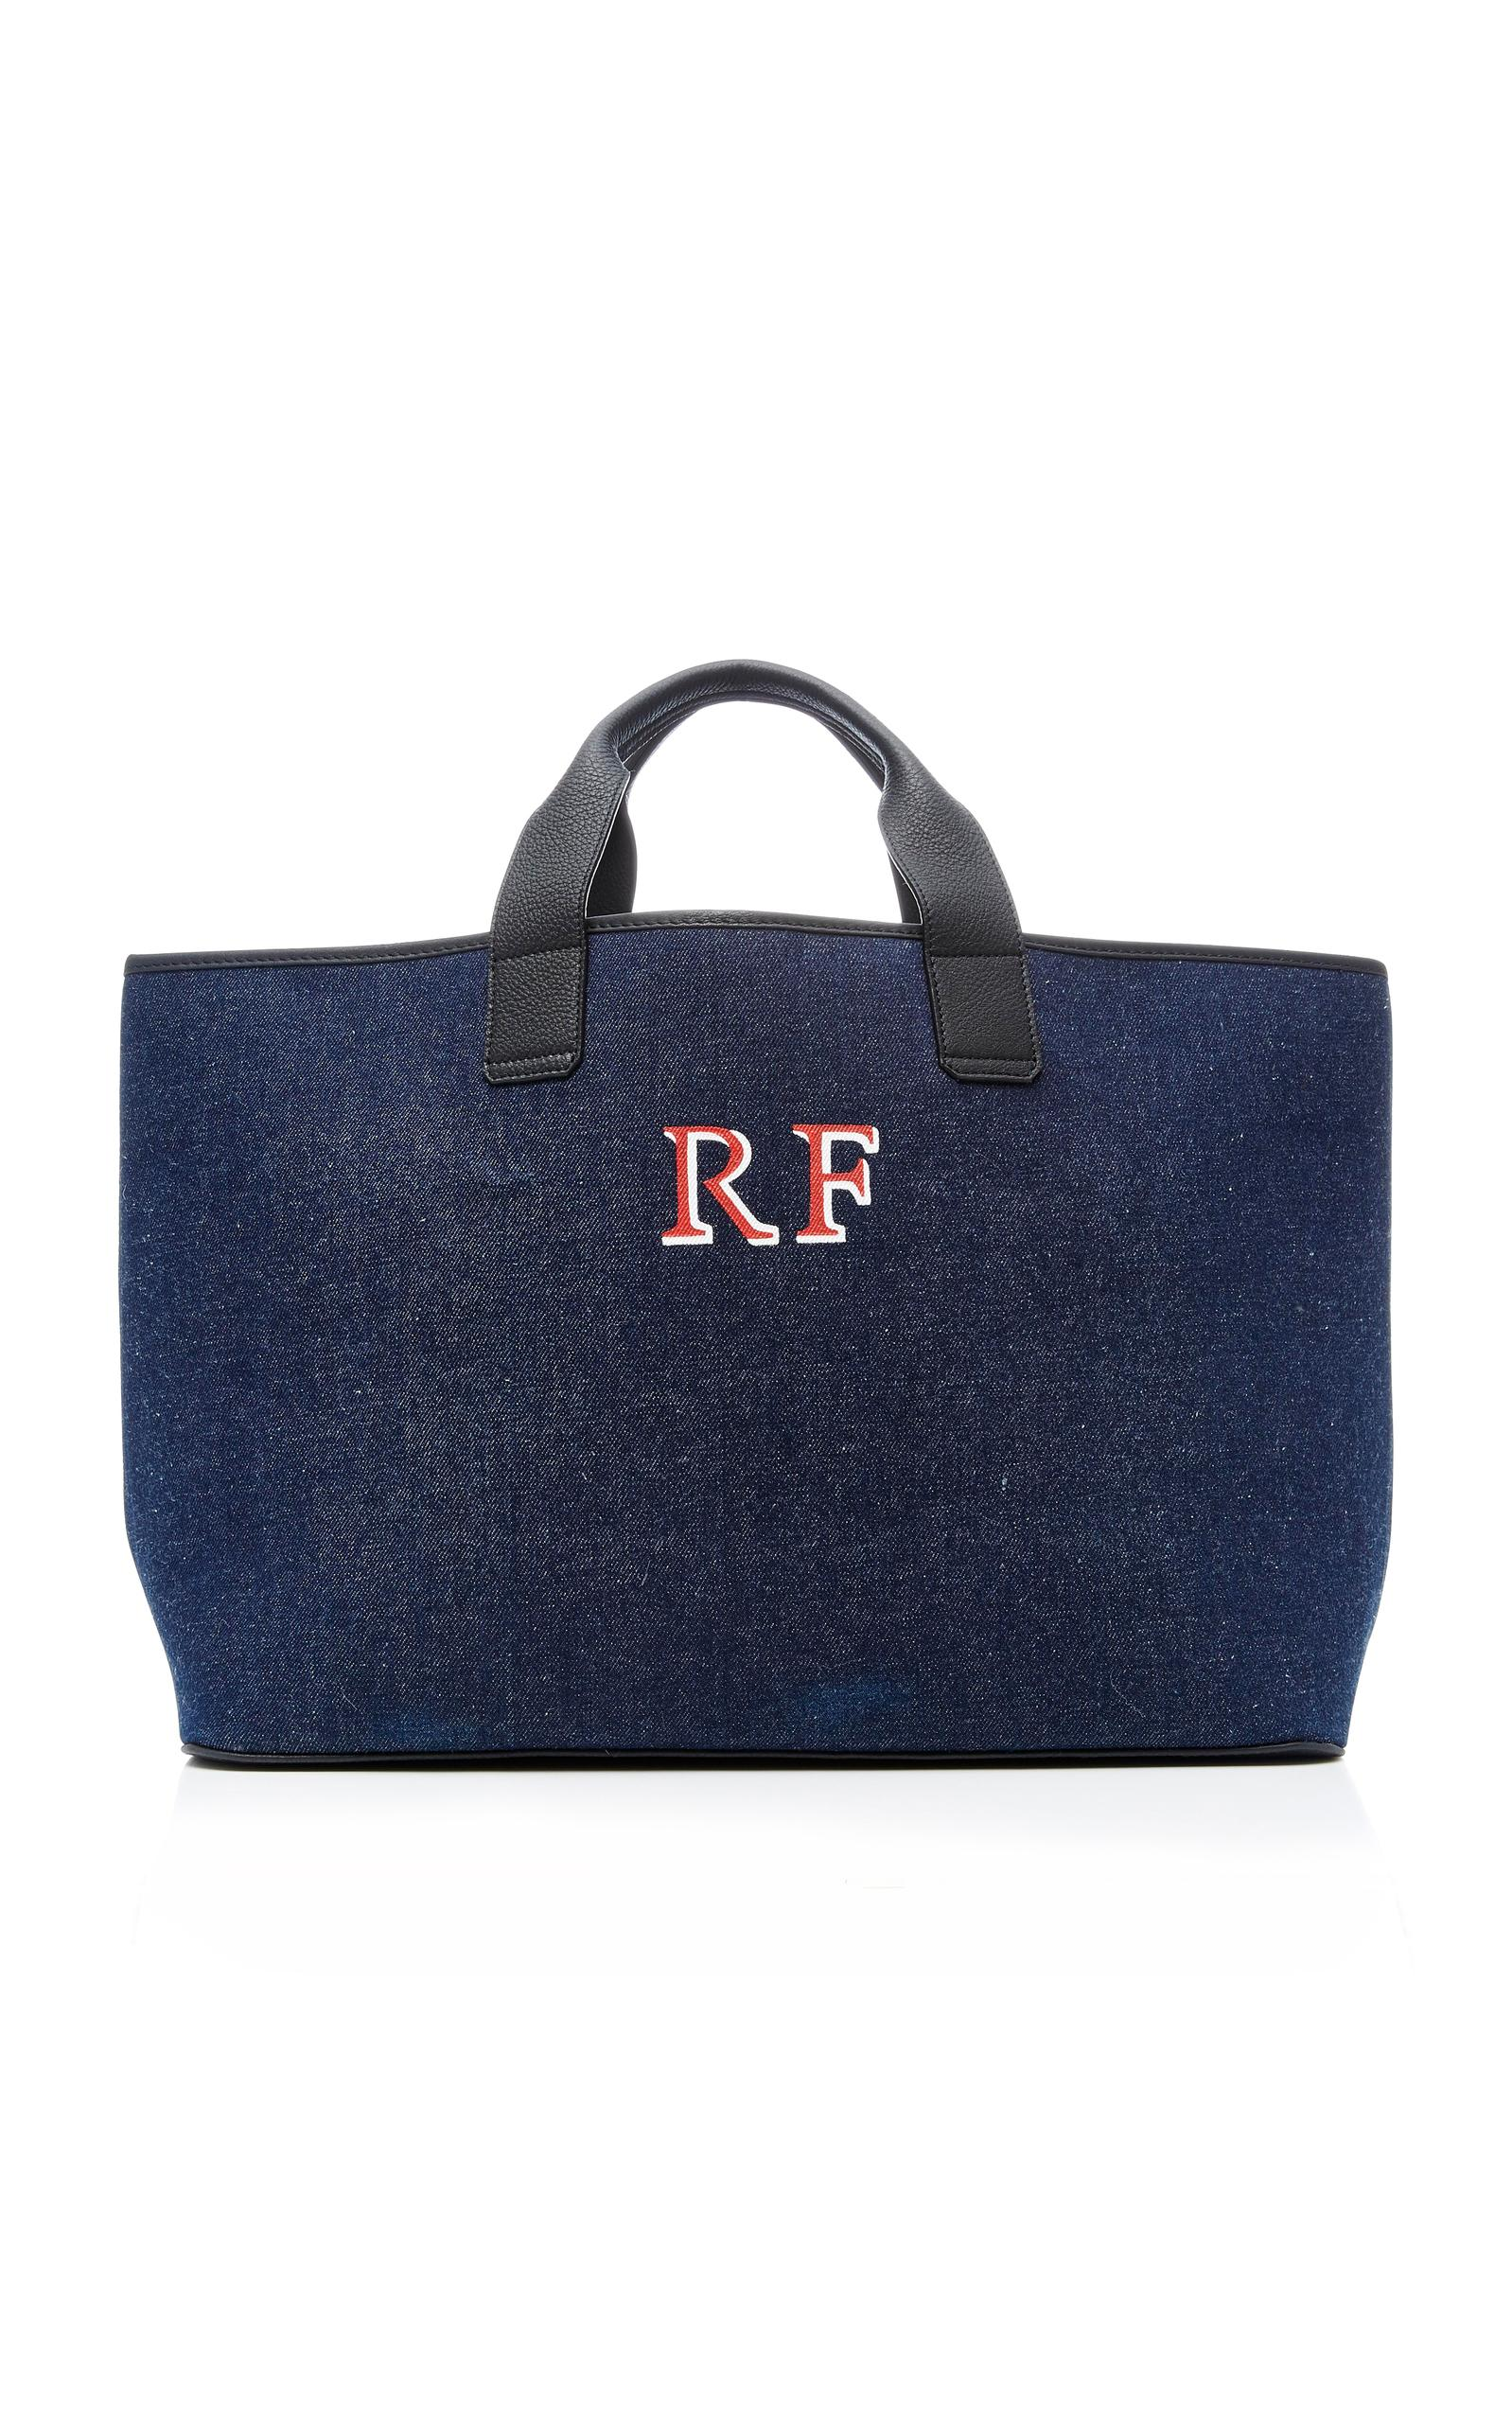 Rae Feather Denim Leather Tote In Navy